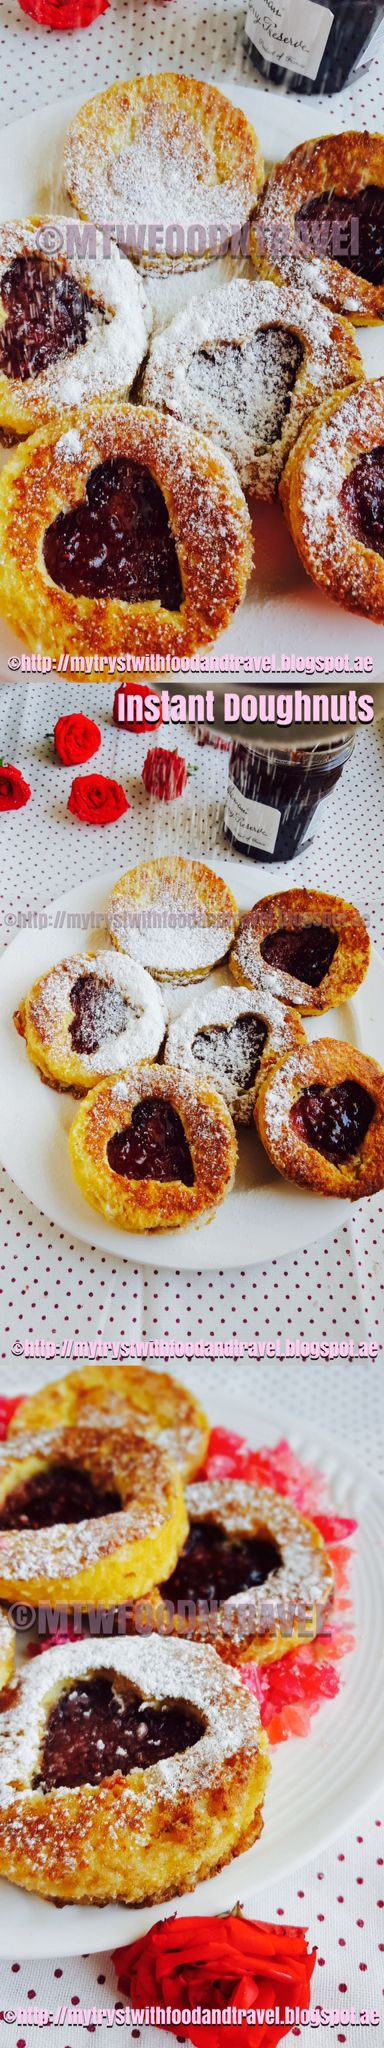 Instant Doughnuts : Easy, instant and yummy.